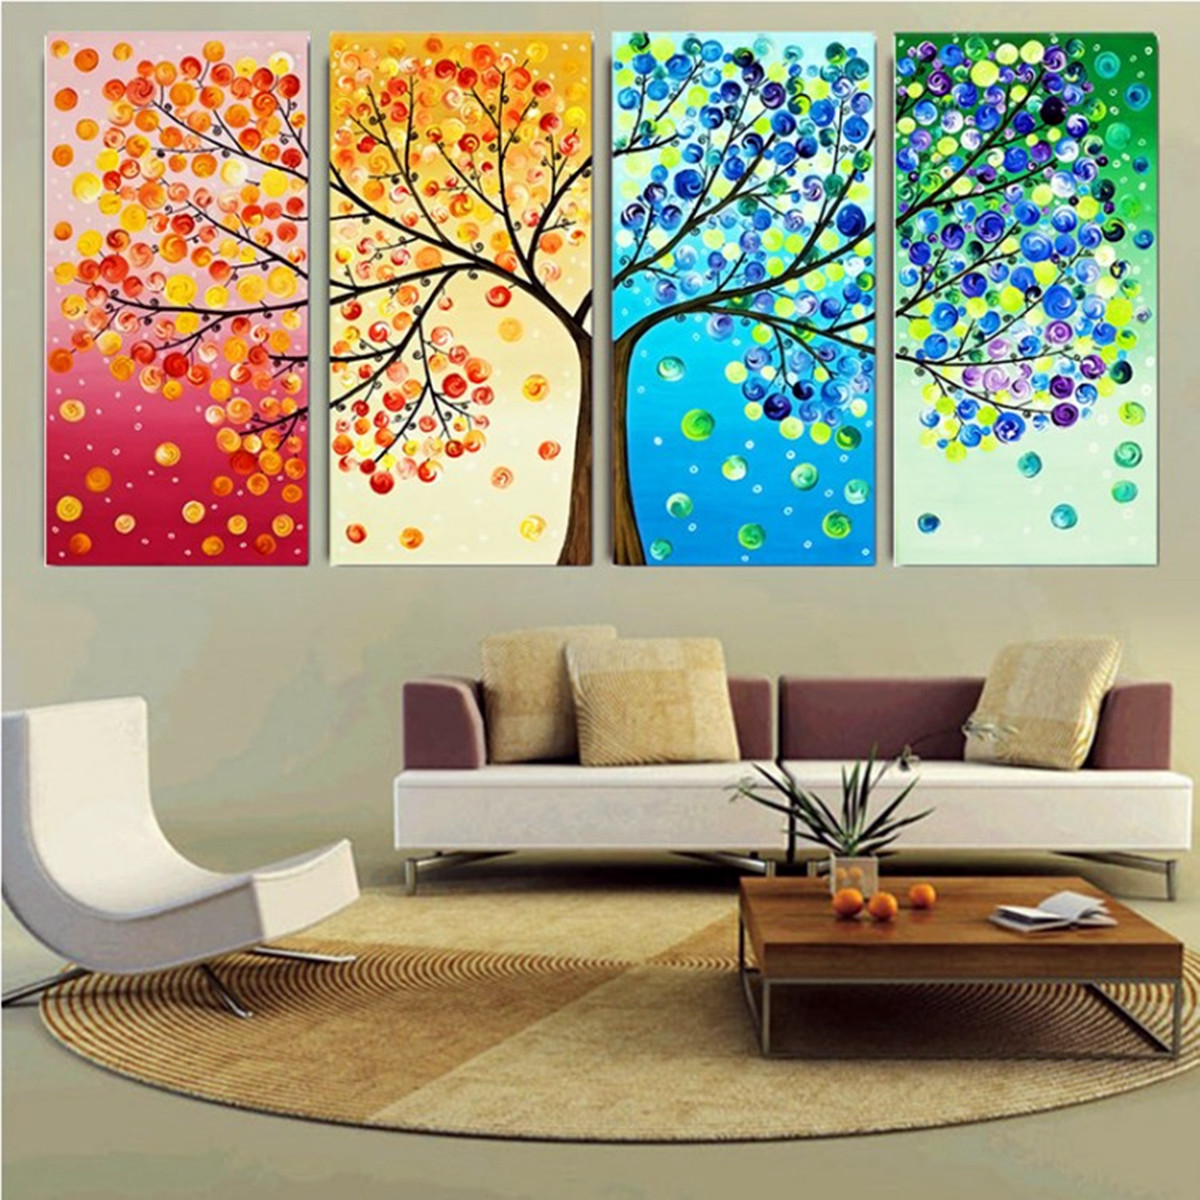 Diy handmade colorful season tree counted cross stitch for 4 seasons decoration